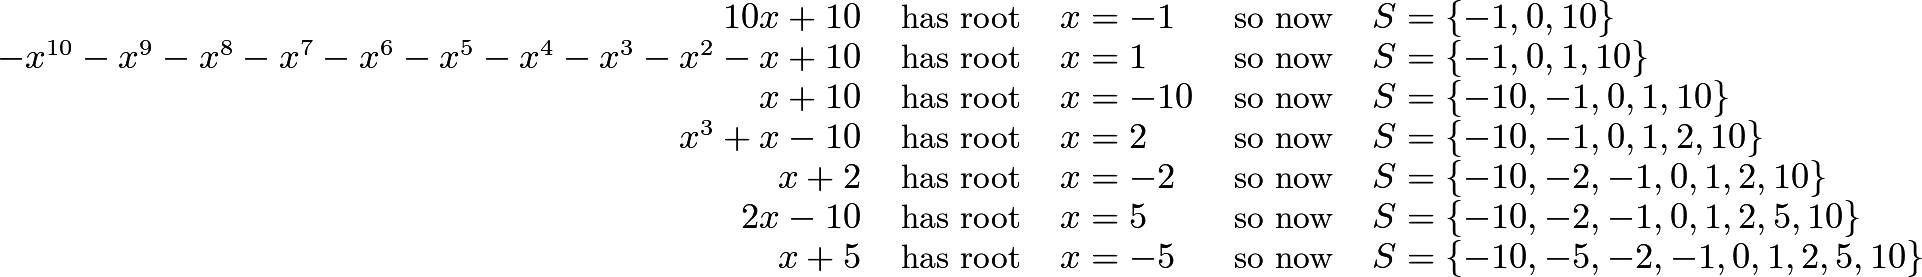 \[\begin{tabular}{r c l c l} \(10x+10\) & has root & \(x=-1\) & so now & \(S=\{-1,0,10\}\) \\ \(-x^{10}-x^9-x^8-x^7-x^6-x^5-x^4-x^3-x^2-x+10\) & has root & \(x=1\) & so now & \(S=\{-1,0,1,10\}\) \\ \(x+10\) & has root & \(x=-10\) & so now & \(S=\{-10,-1,0,1,10\}\) \\ \(x^3+x-10\) & has root & \(x=2\) & so now & \(S=\{-10,-1,0,1,2,10\}\) \\ \(x+2\) & has root & \(x=-2\) & so now & \(S=\{-10,-2,-1,0,1,2,10\}\) \\ \(2x-10\) & has root & \(x=5\) & so now & \(S=\{-10,-2,-1,0,1,2,5,10\}\) \\ \(x+5\) & has root & \(x=-5\) & so now & \(S=\{-10,-5,-2,-1,0,1,2,5,10\}\) \end{tabular}\]